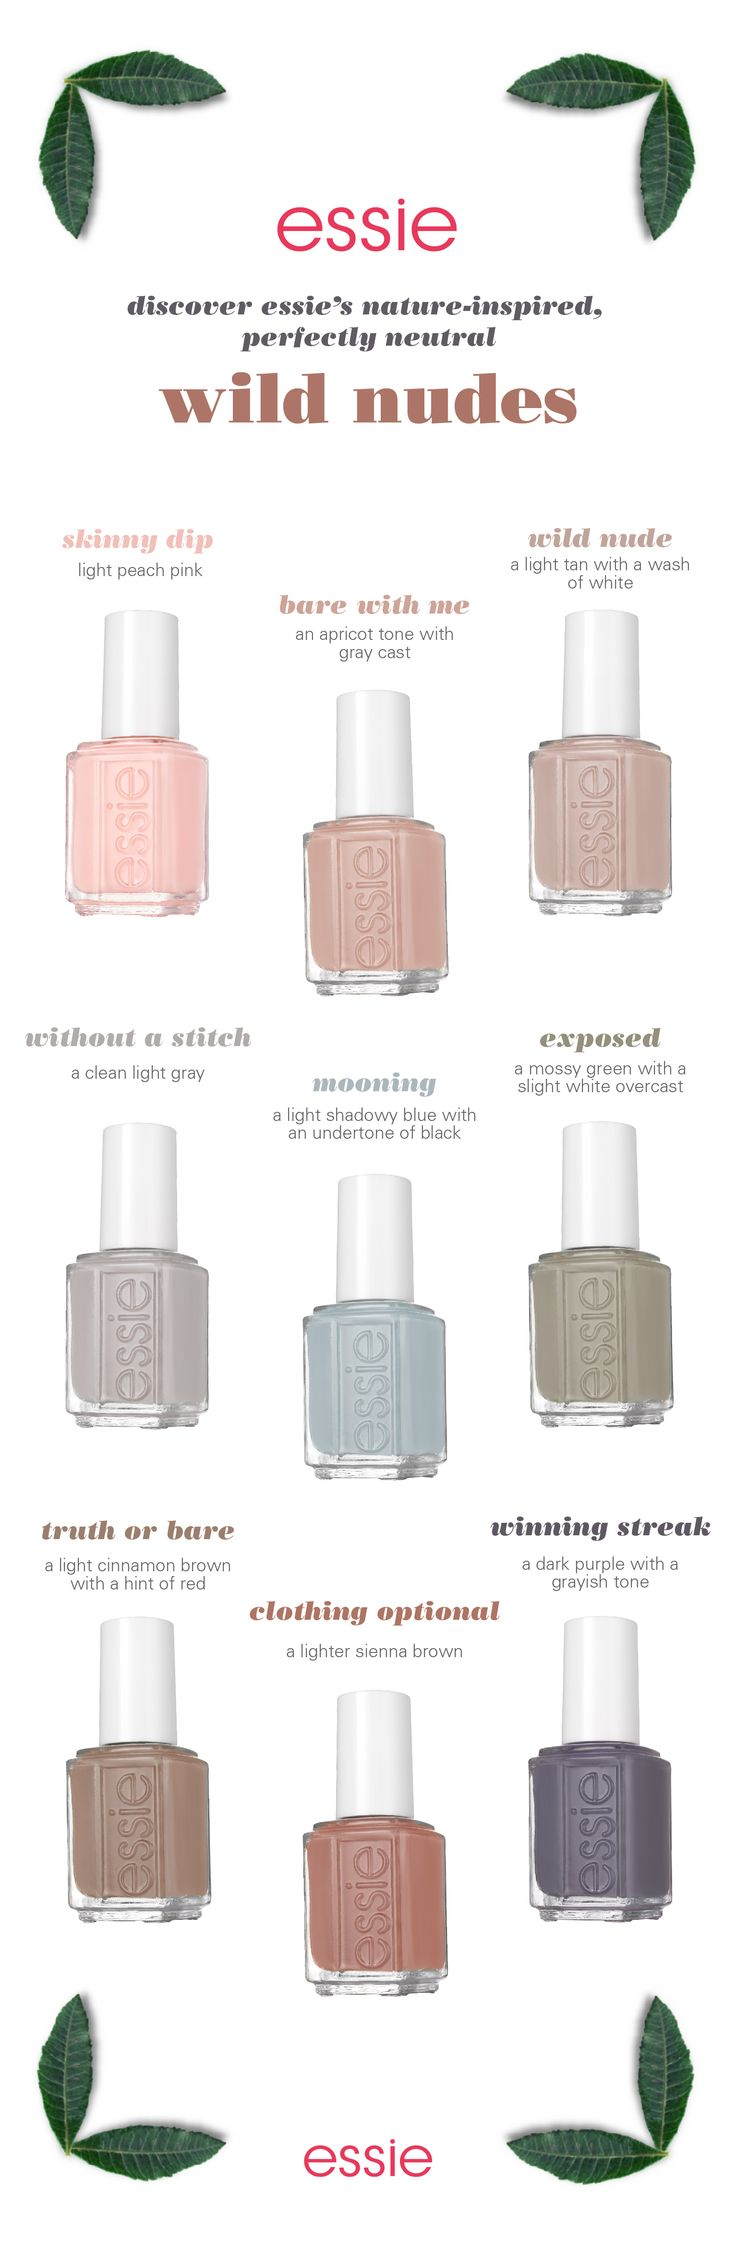 from a light tan with a wash of white to a shadowy blue, these shades are meant to be exposed. strip down and bare it all in the wildest of nude nail colors for spring. untamed, fierce and sexy, these disarming shades will totally charm the pants off one and all. get ready to expose your nails in our latest collection of essie wild nudes polish -- they look amazing on all skintones.